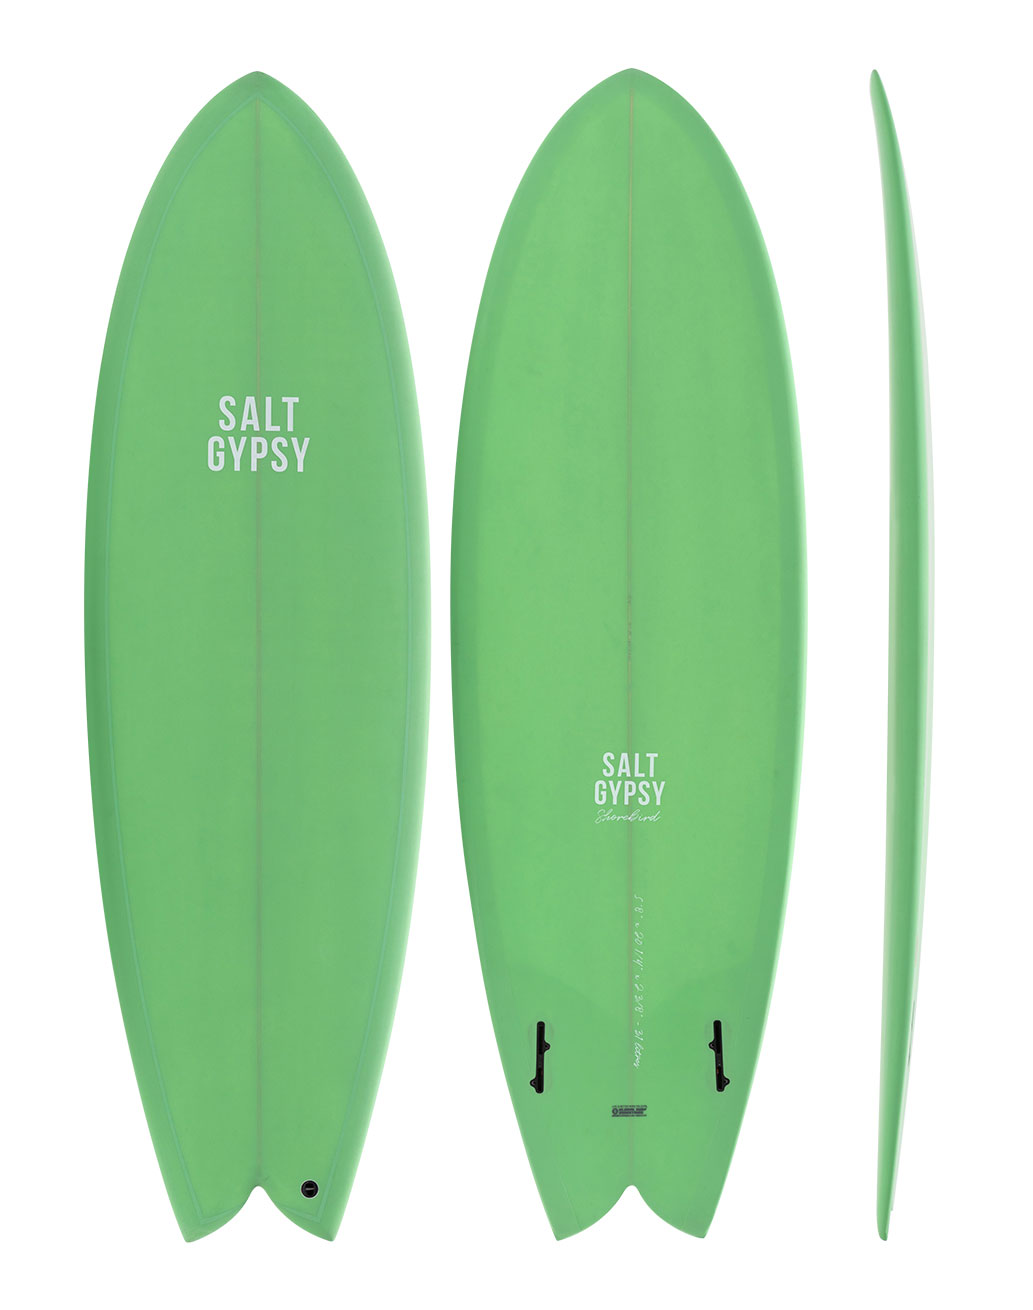 Saly Gypsy Shorebird Surfboard